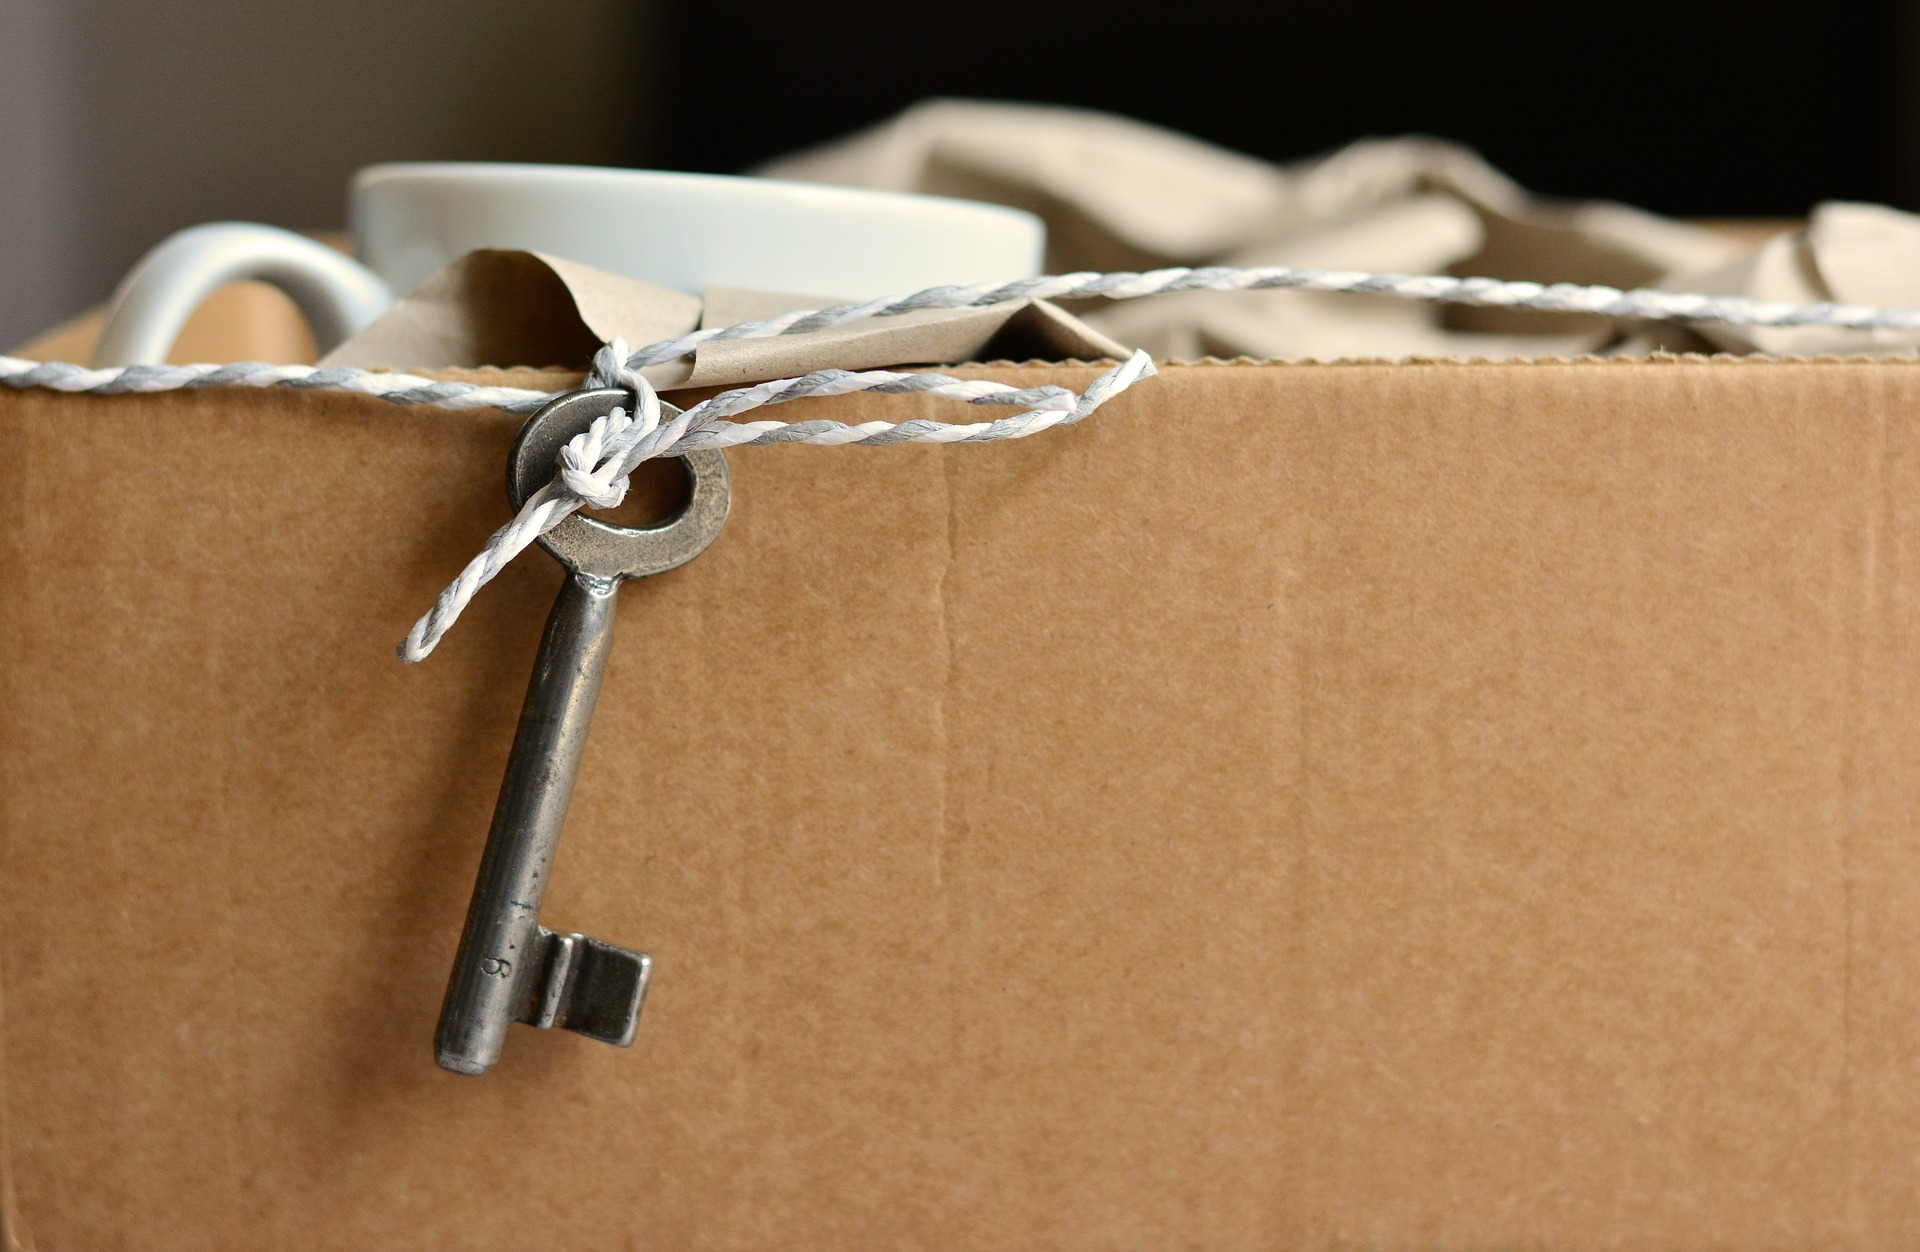 How to pick the right moving services?